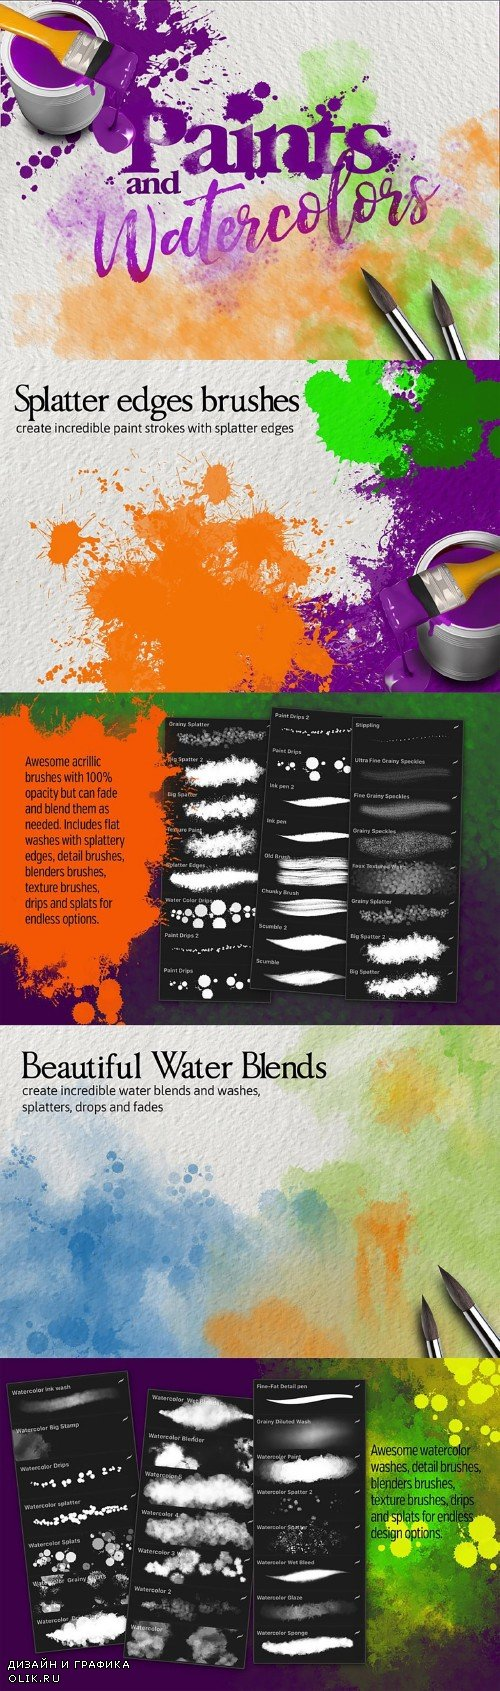 42 Paints and Watercolor Brushes - 3420671